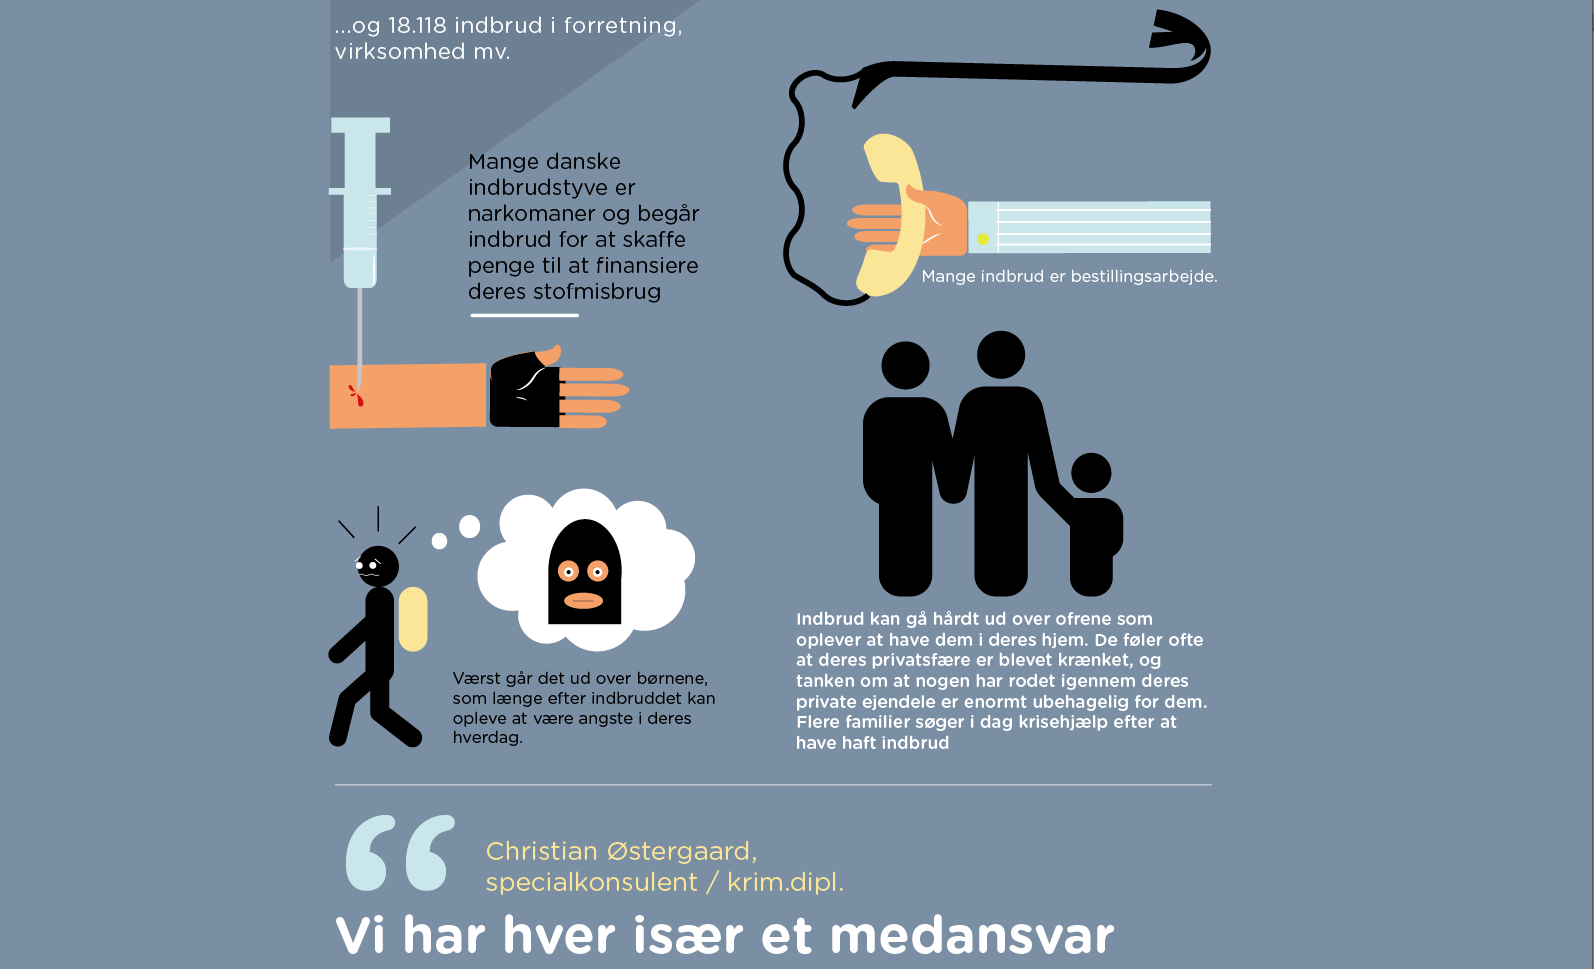 Infographic for the Danish police